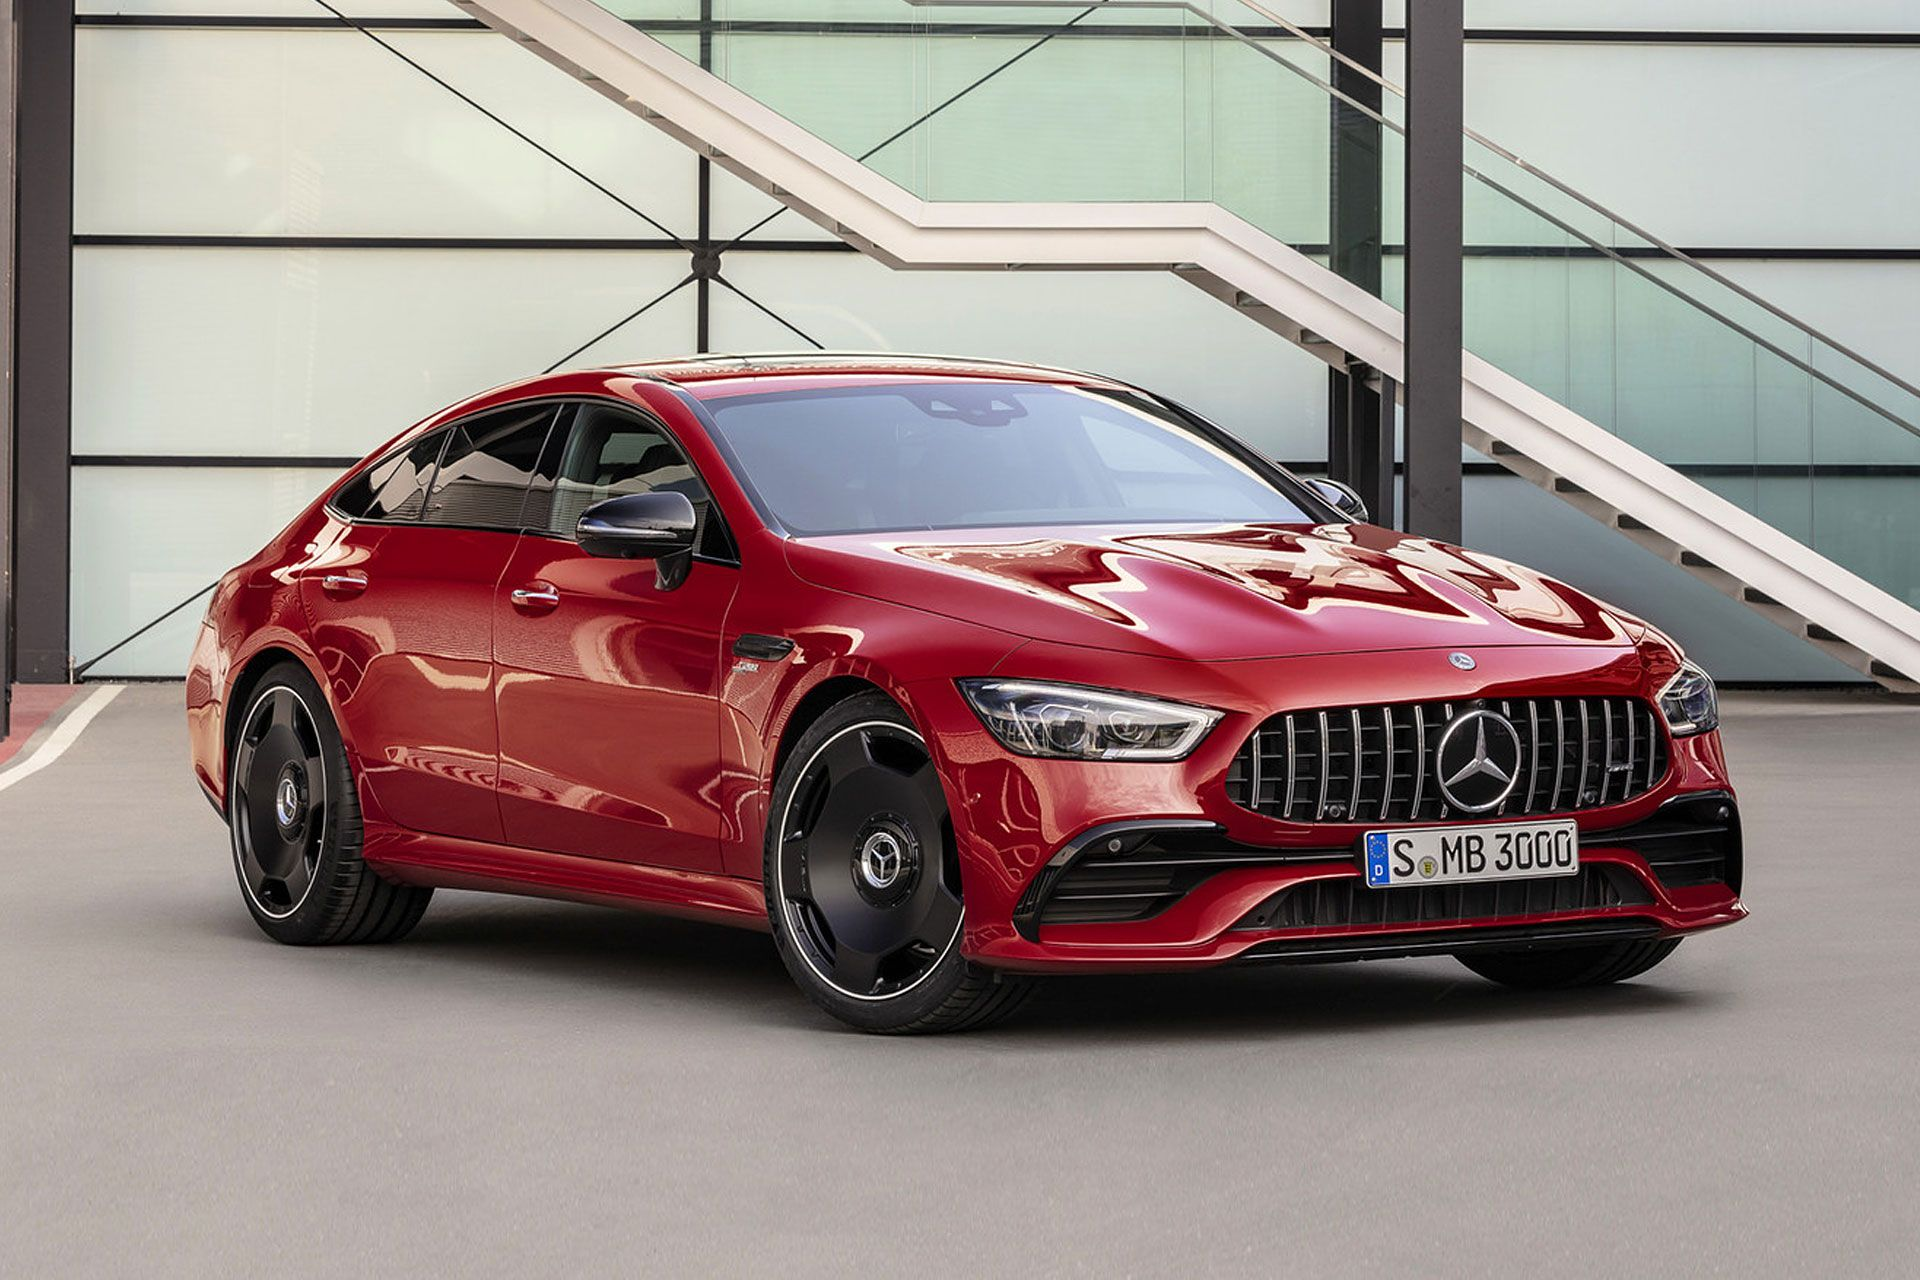 Mercedes Amg Gt 4 Door Coupe Simply Pimpin Ghetto Sleighs